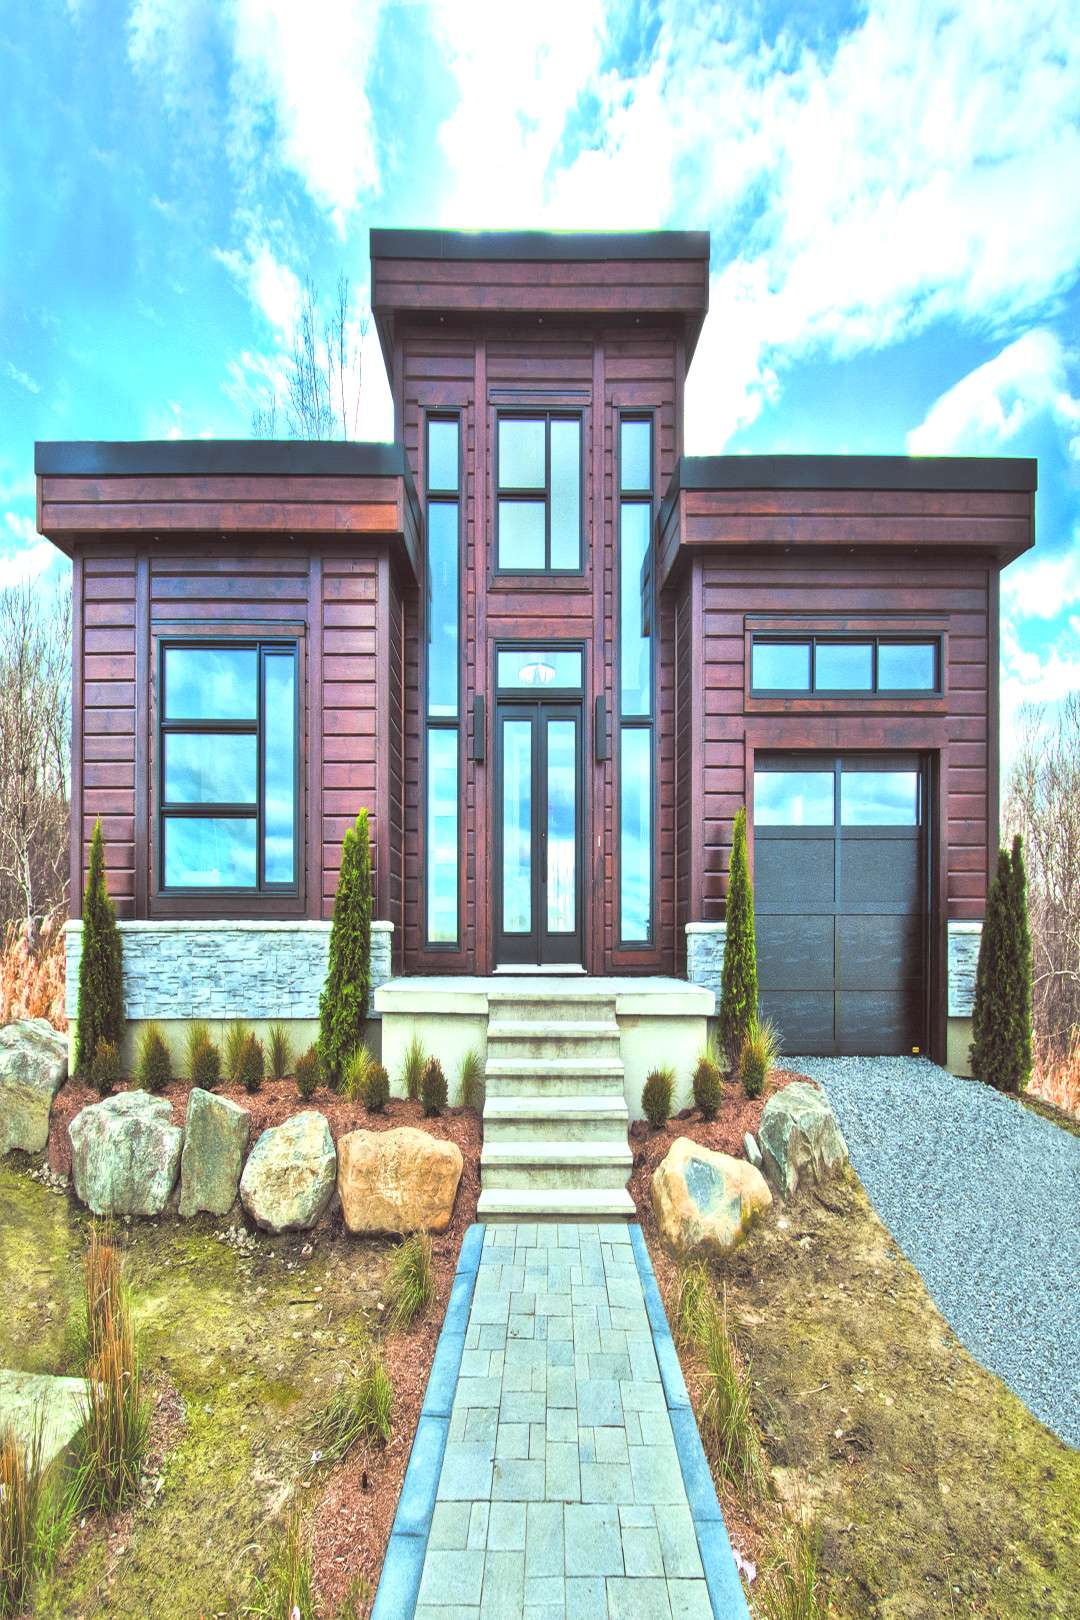 Timber Blocks Contemporary Style Custom Home in Mirabel, Quebec - the Sonoma Were shining the li